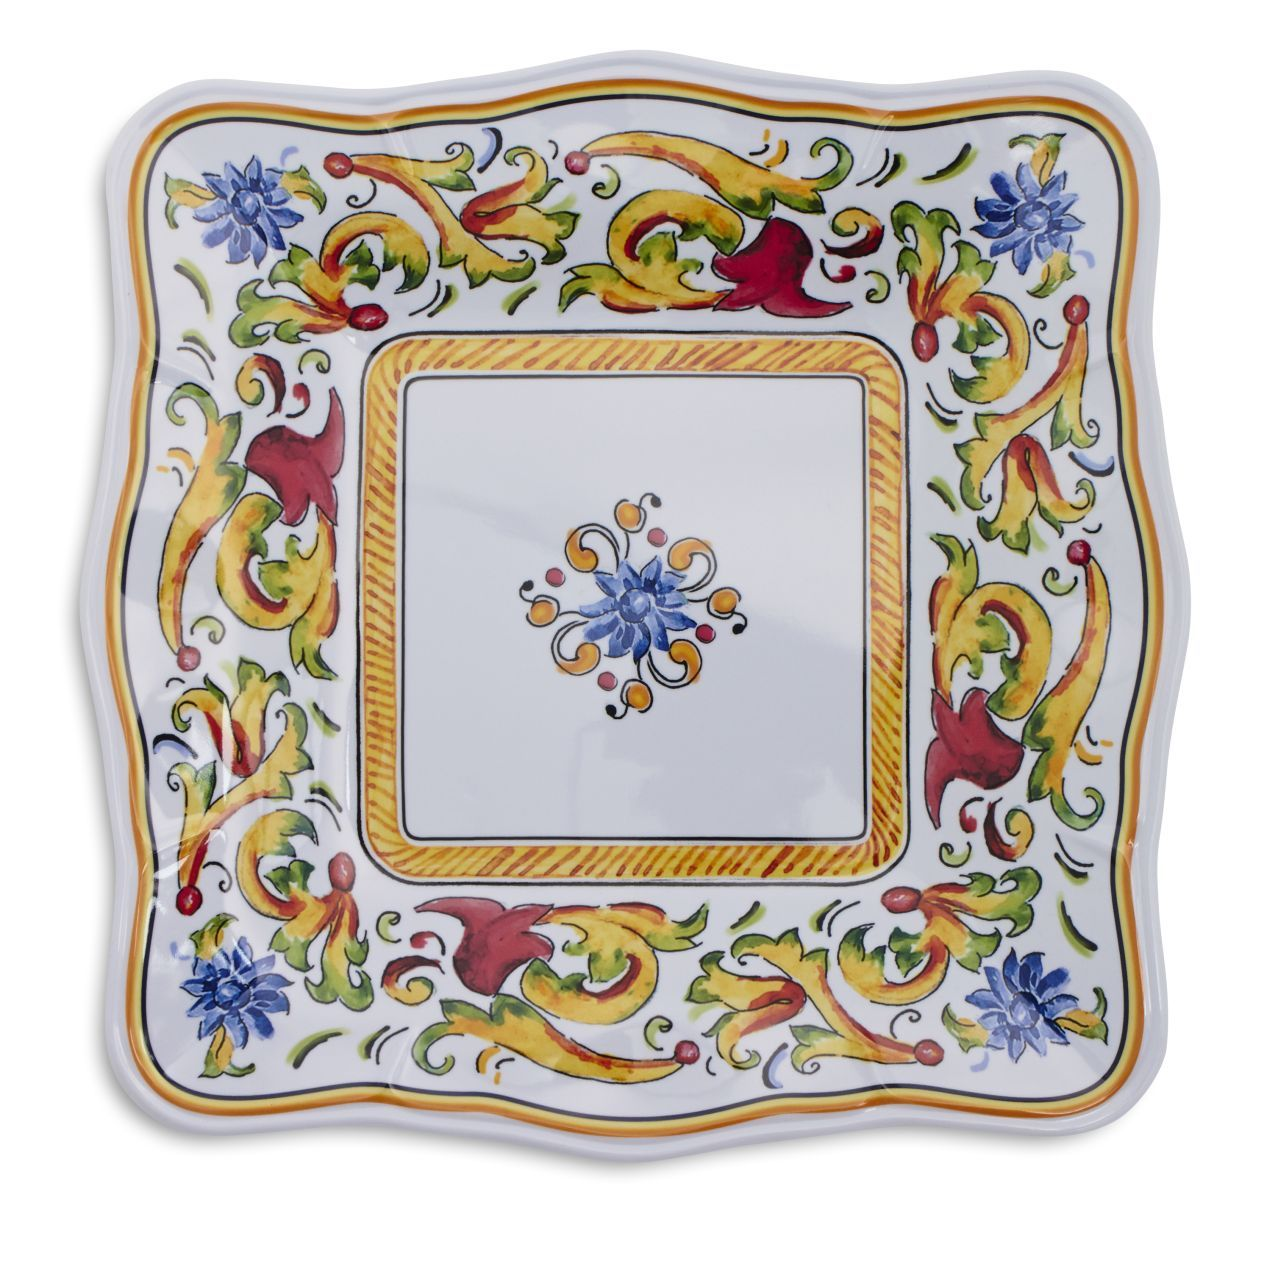 Add A Touch Of Italian Charm To Any Picnic, Barbecue Or Garden Party With  These Festive Floral Plates. Perfect For Outdoor Dining And Entertaining,  ...